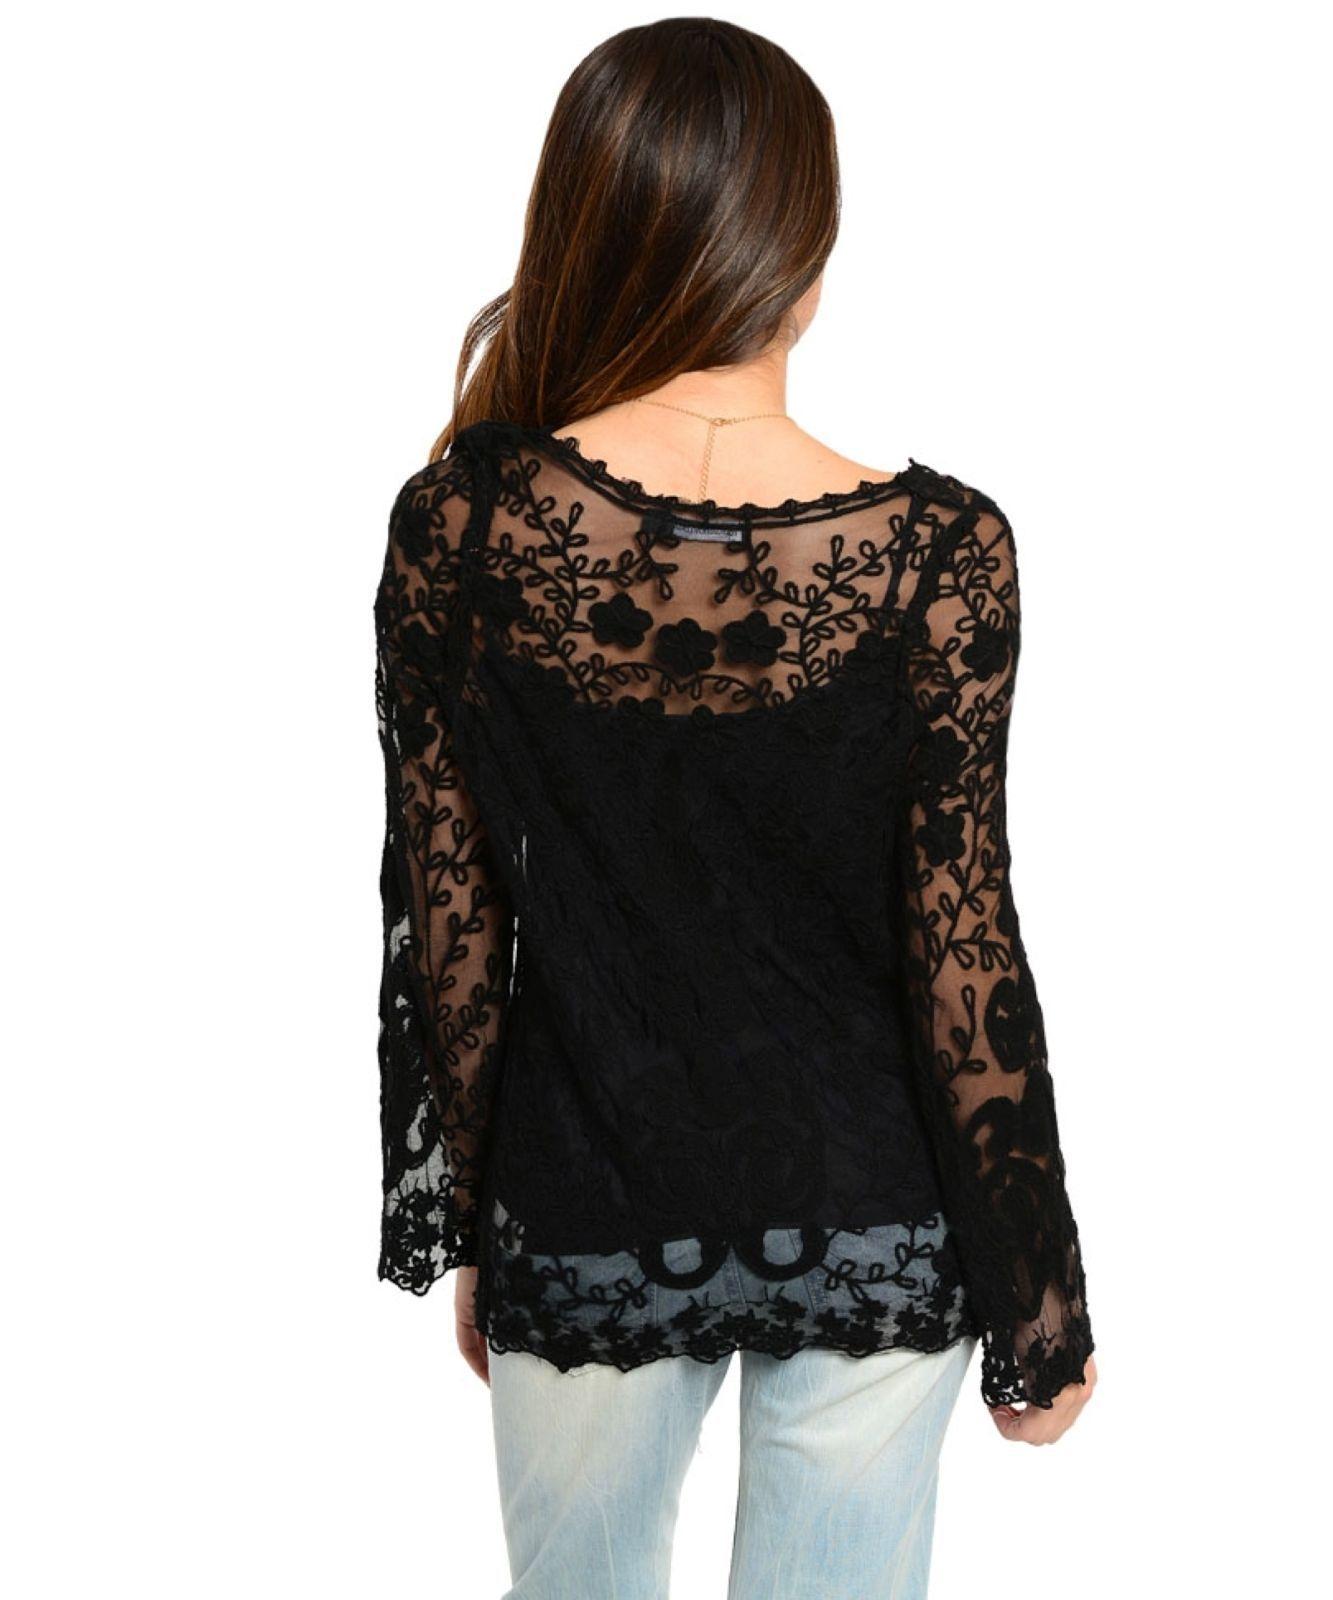 Image 2 of Romantic Sexy Boho Lace Jrs Tunic in White or Black, Party or Casual Dress-up -